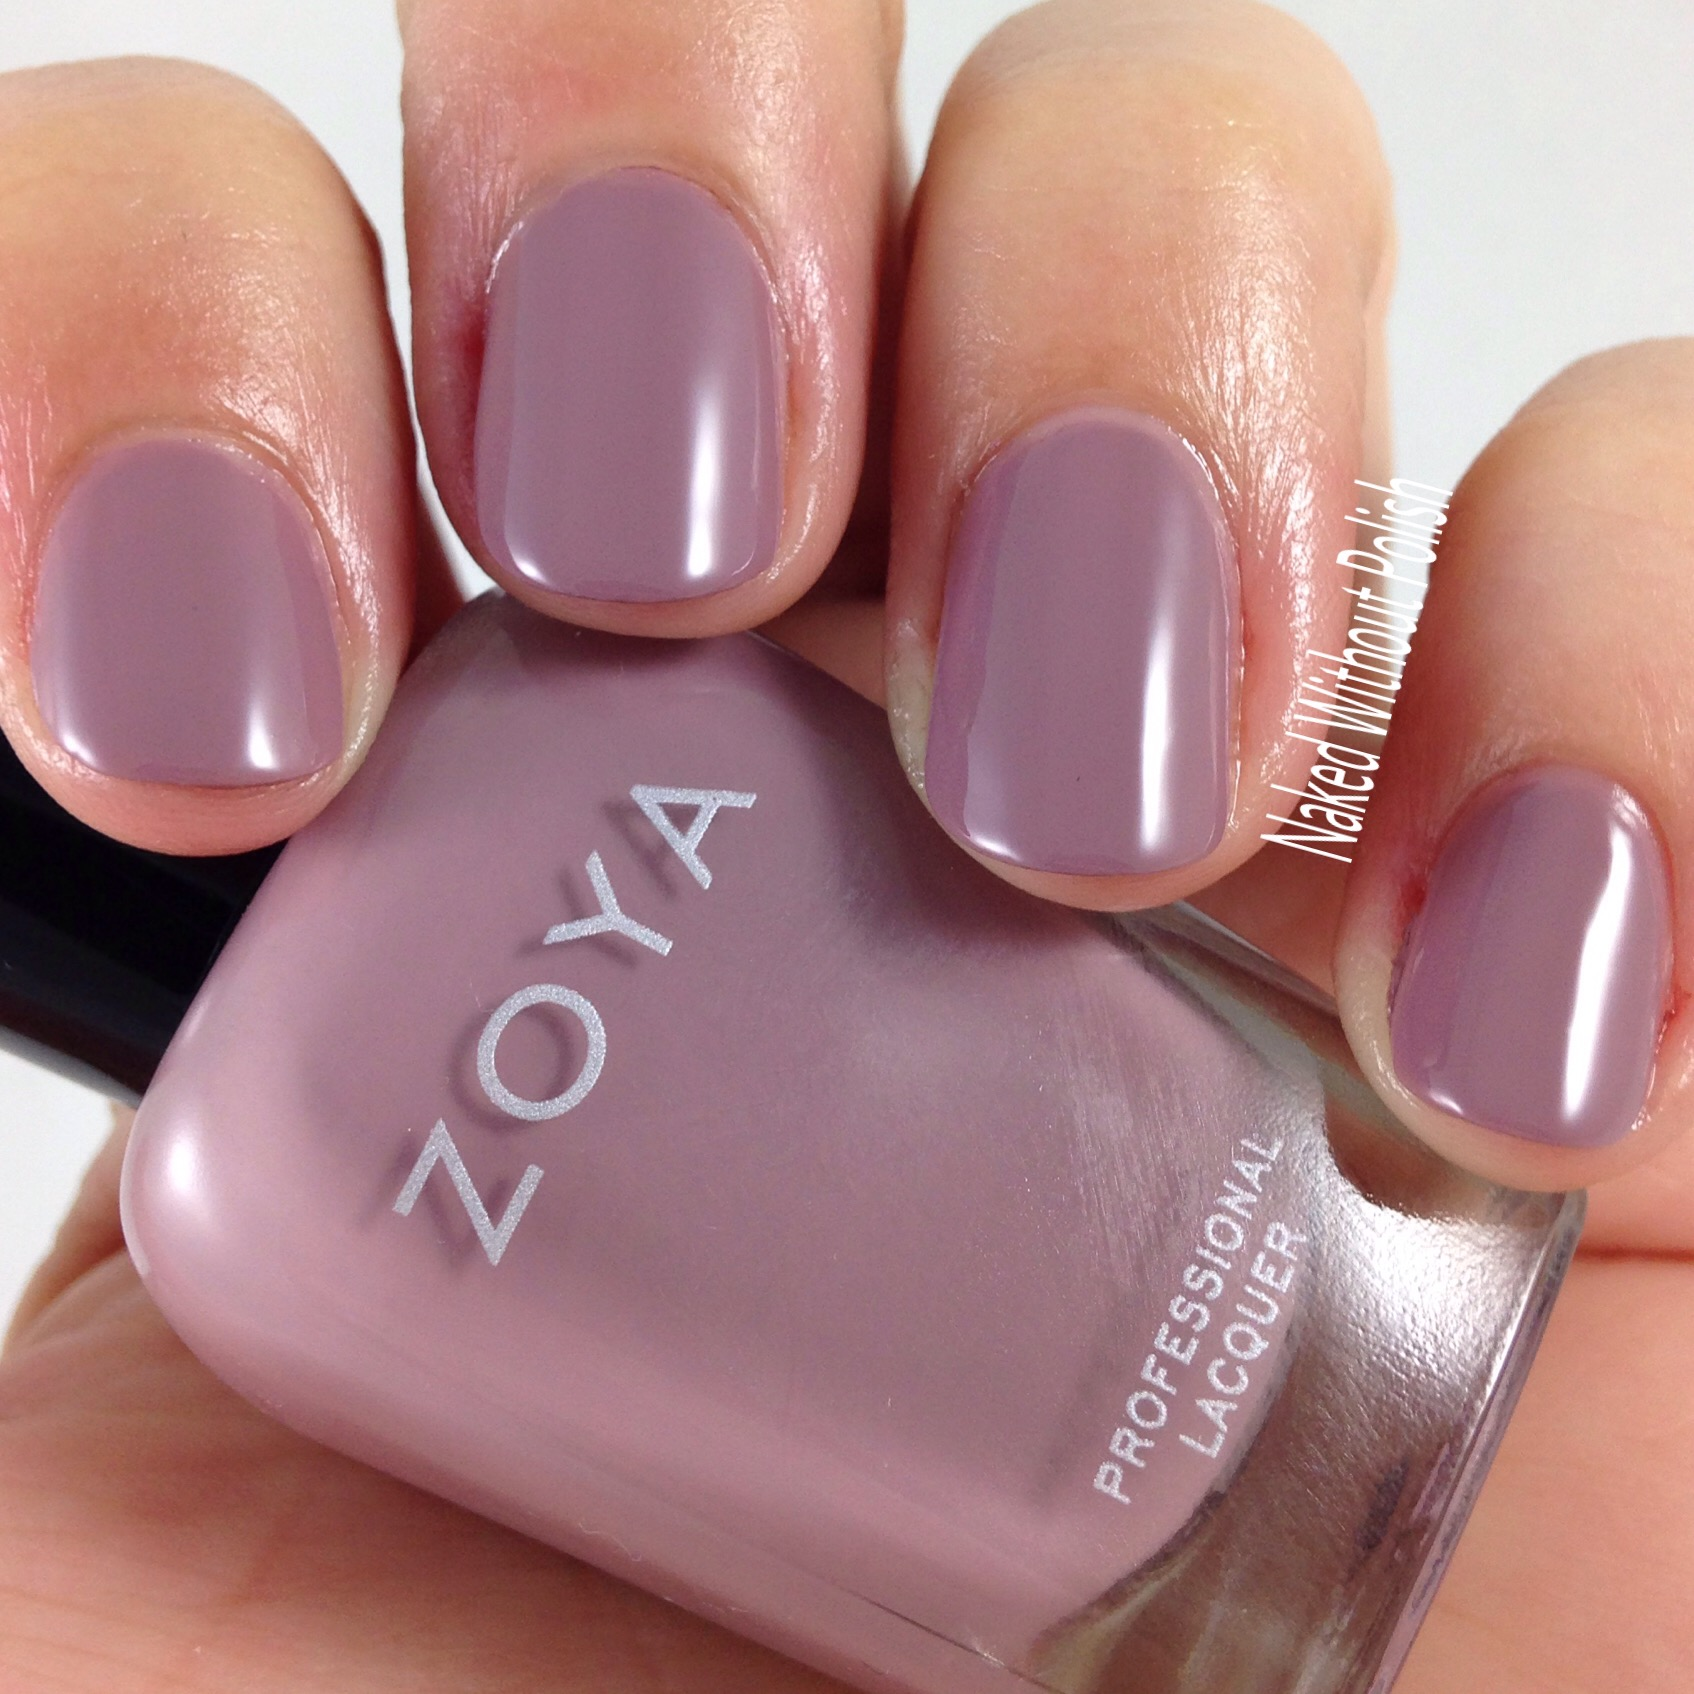 Zoya sophisticates collection swatch and review naked without polish zoya presley 4 reheart Gallery